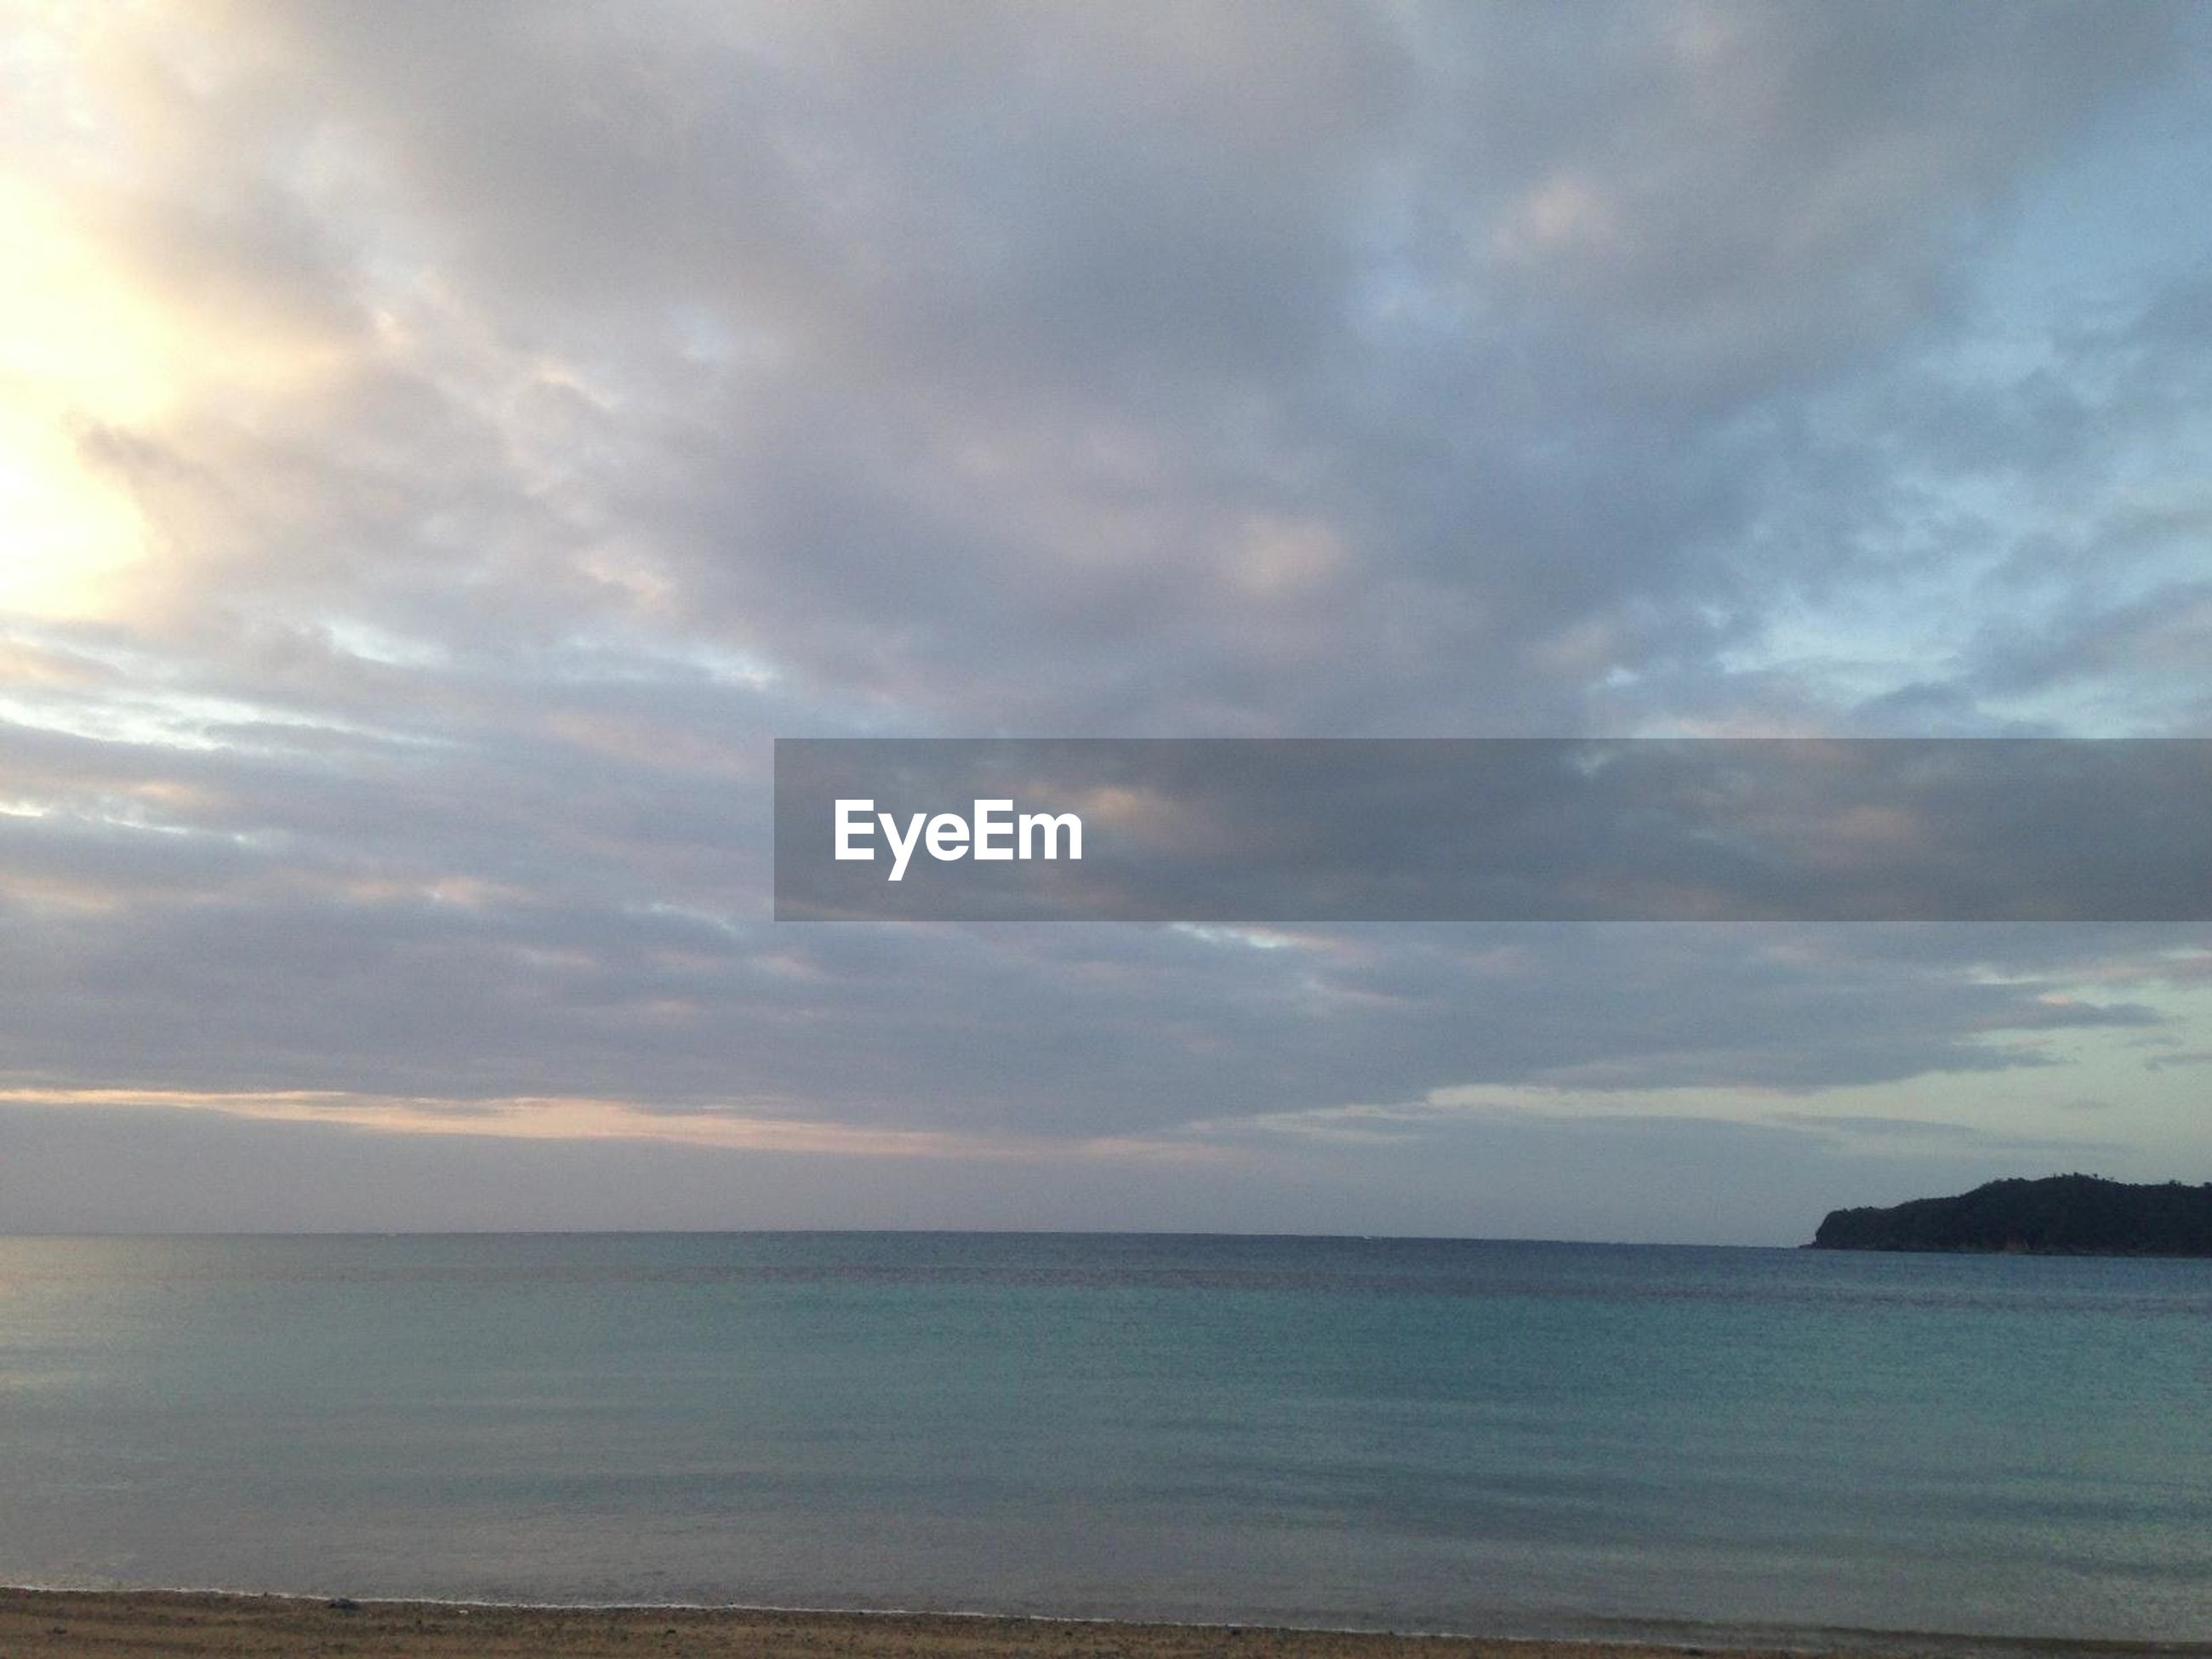 sea, sky, water, scenics, tranquil scene, horizon over water, cloud - sky, tranquility, beauty in nature, cloudy, beach, nature, cloud, idyllic, shore, weather, overcast, sunset, remote, outdoors